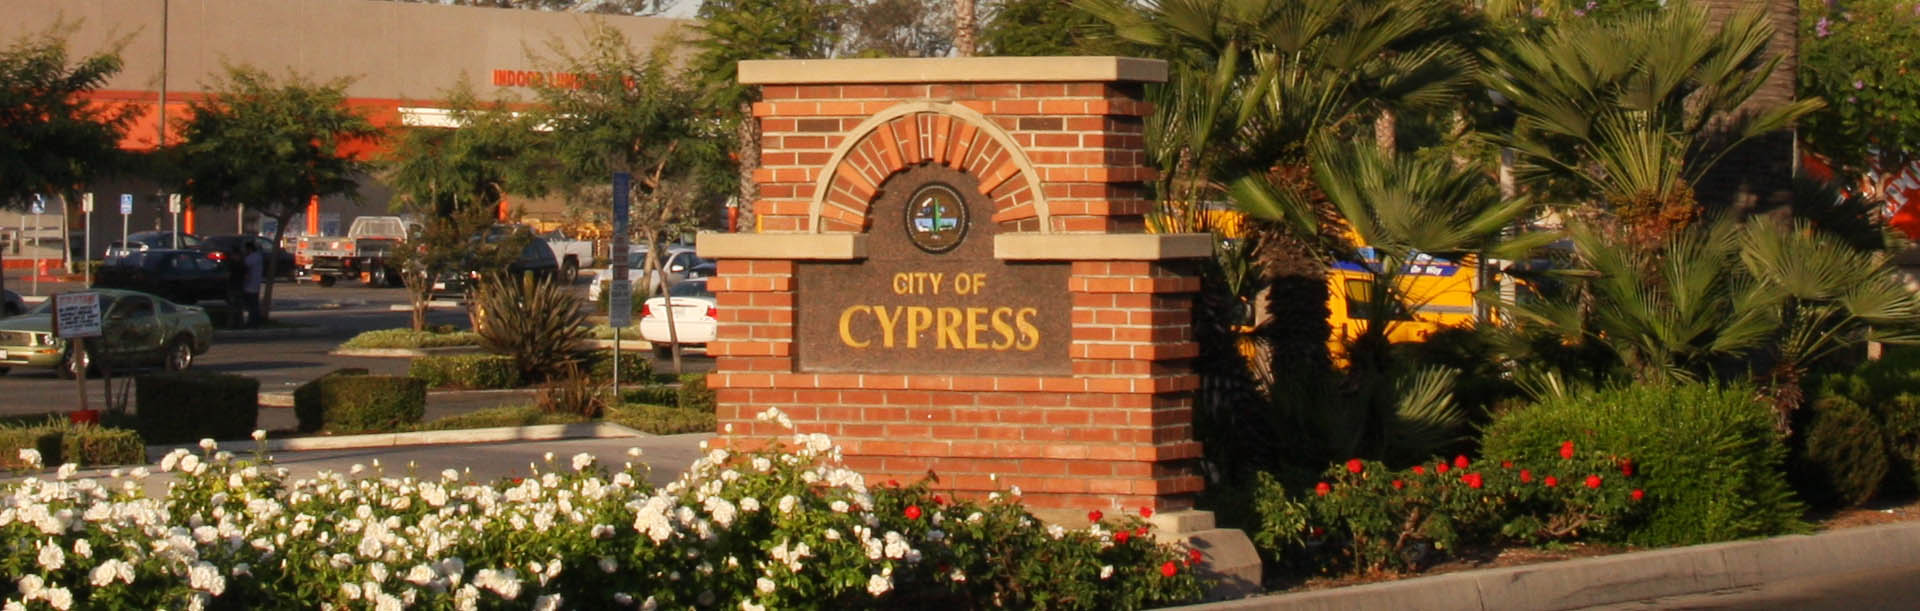 City of Cypress | Home